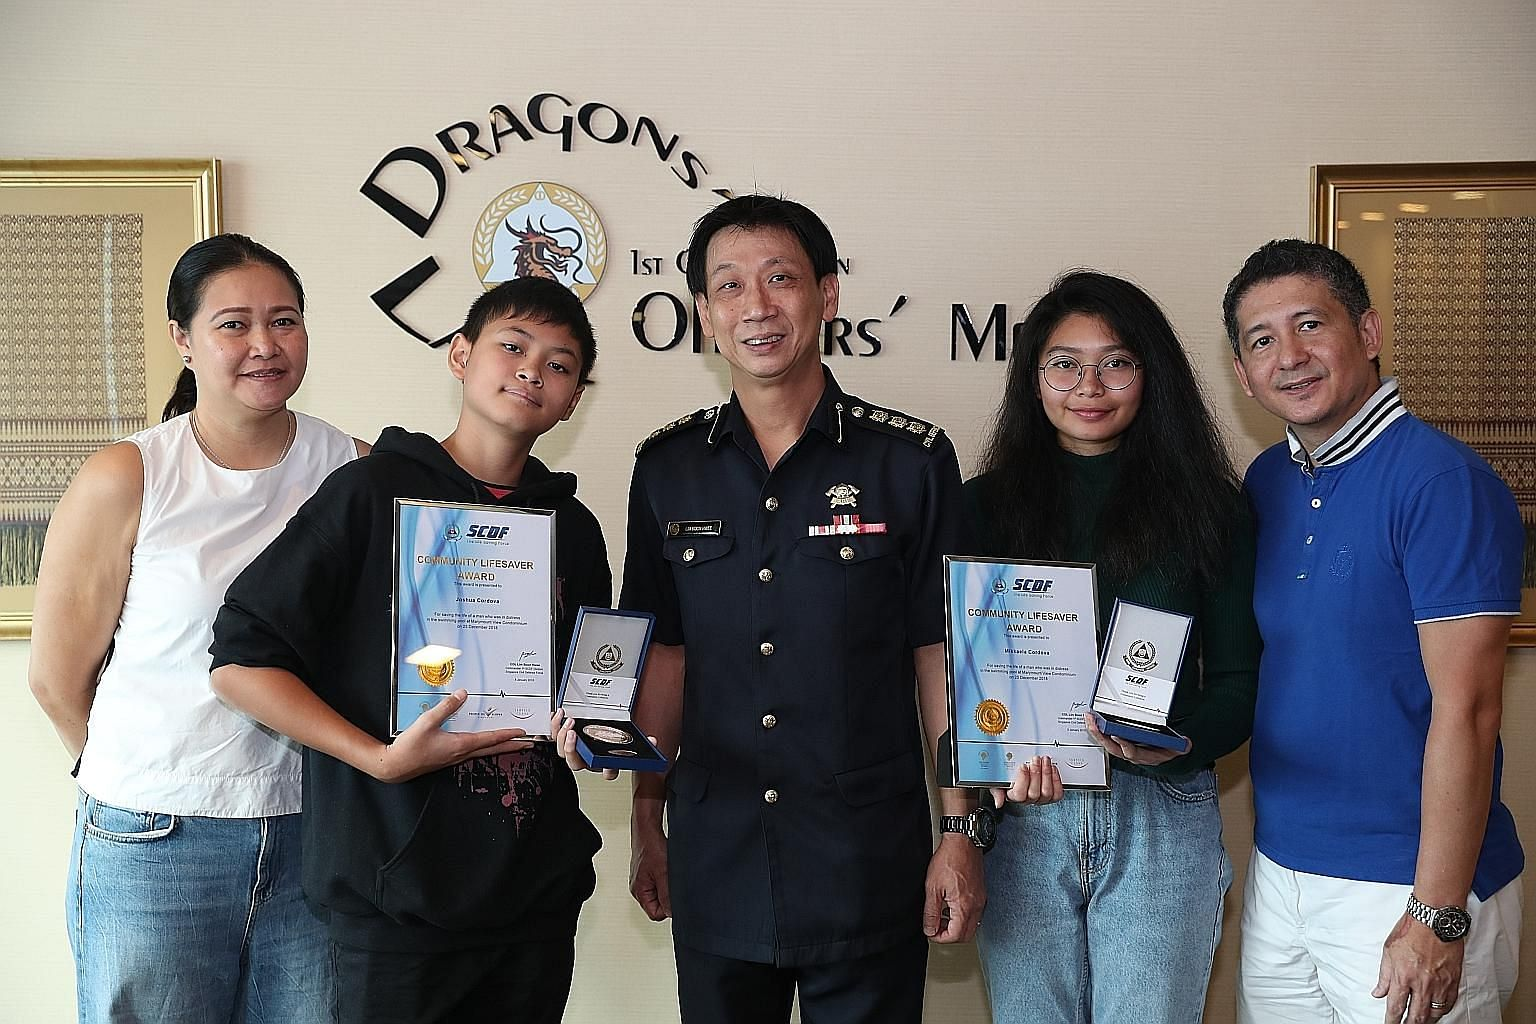 Colonel Lim Boon Hwee, Commander of the 1st SCDF Division, with (from left) Mrs Laureen Cordova, her son Joshua, daughter Mikkaela, and husband Jun. With the help of her brother, Miss Cordova pulled out an unconscious boy from the 2.4m-deep pool at M